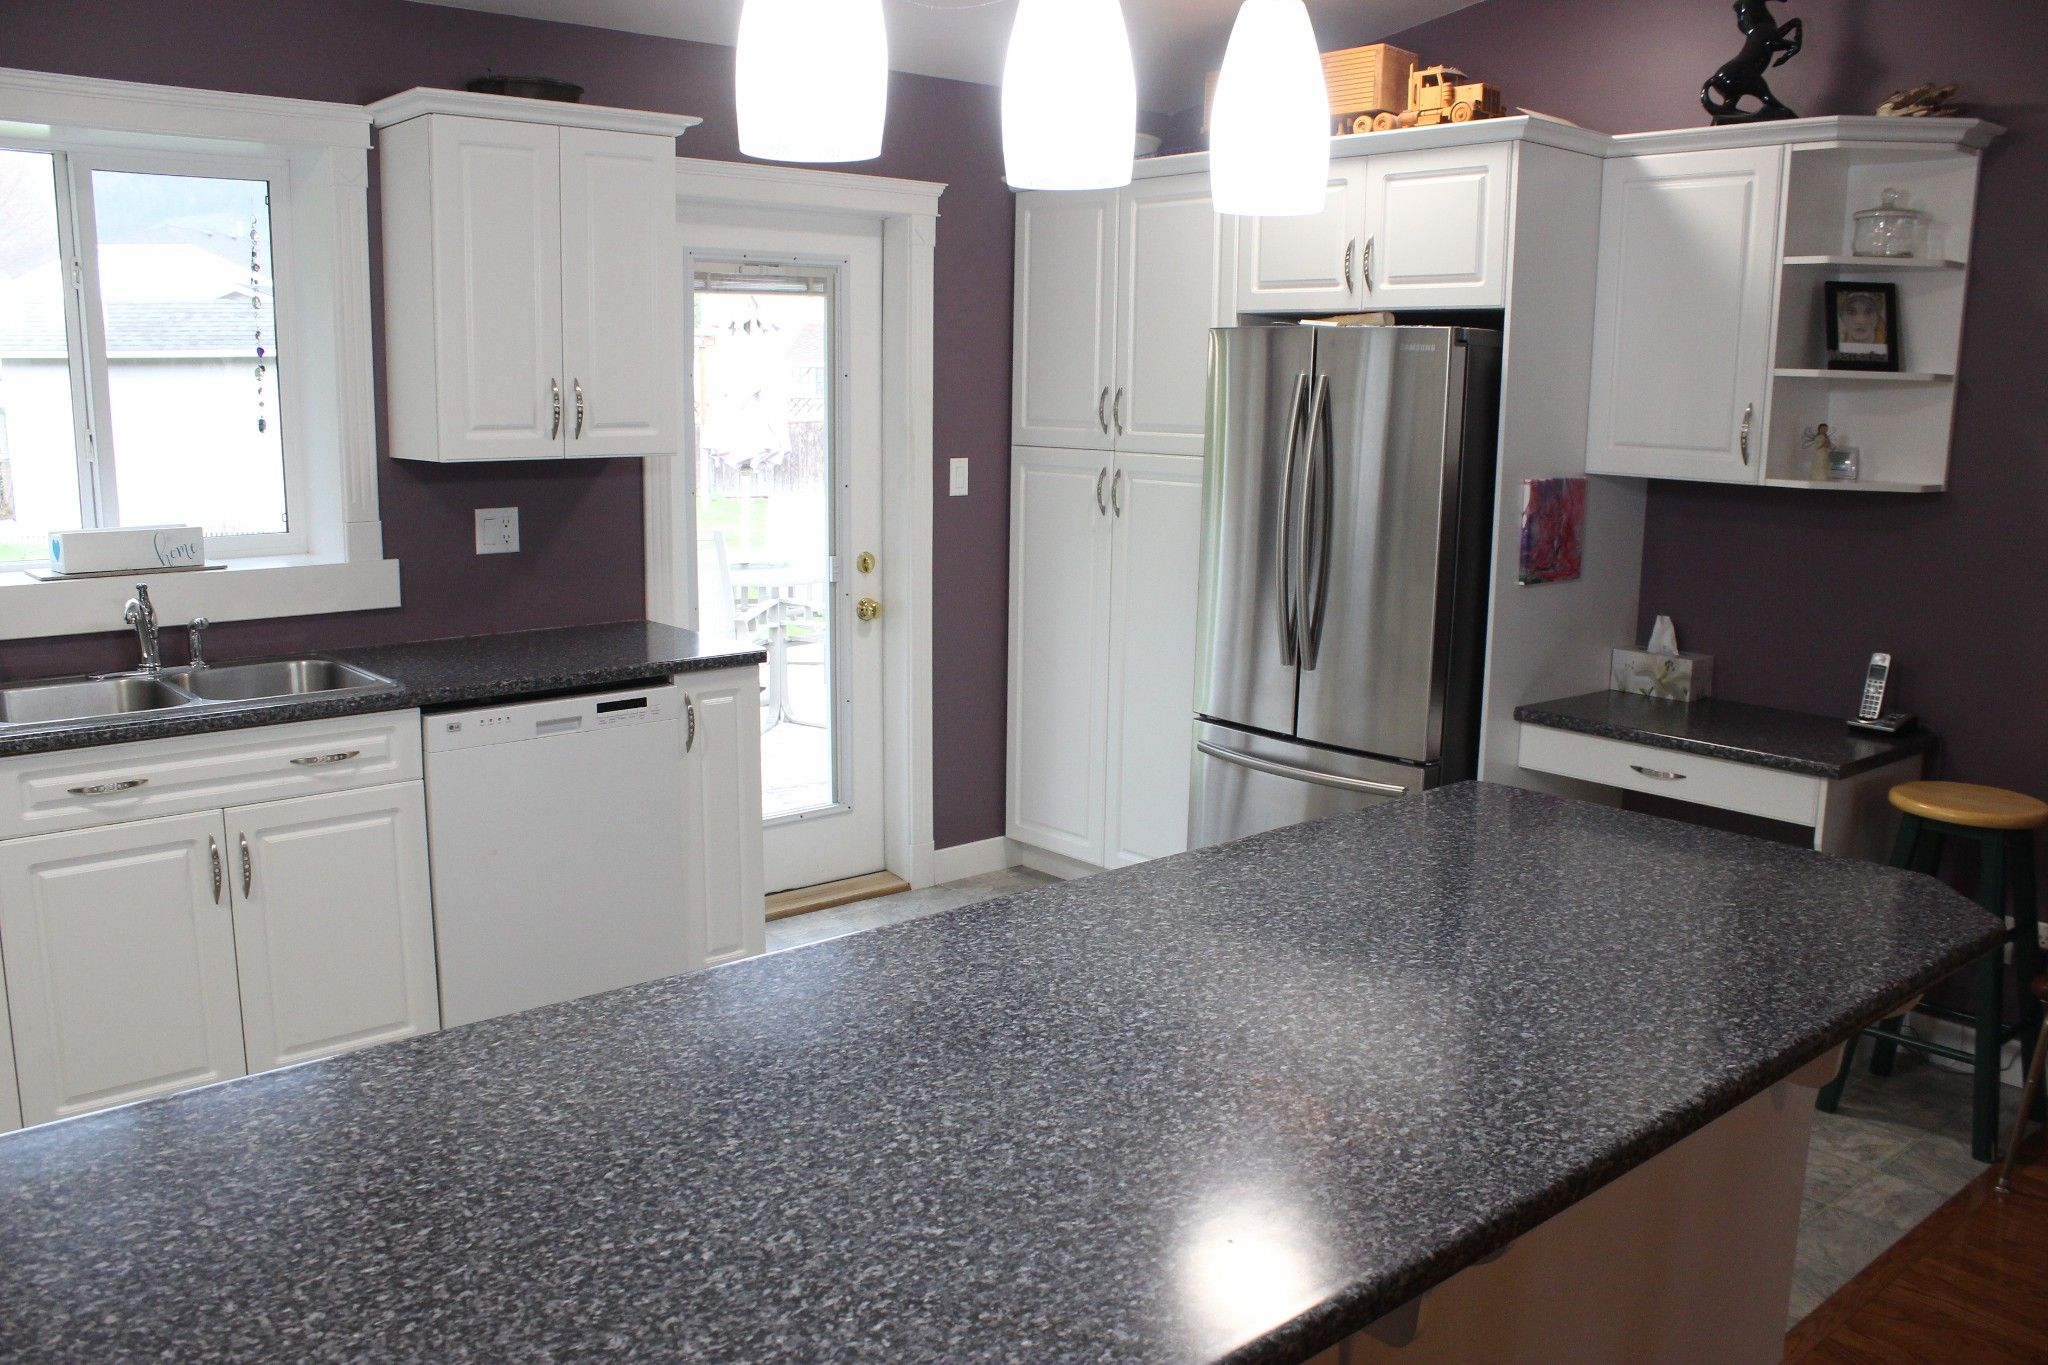 Photo 8: Photos: 351 Juniper Street in Chase: House for sale : MLS®# 151124